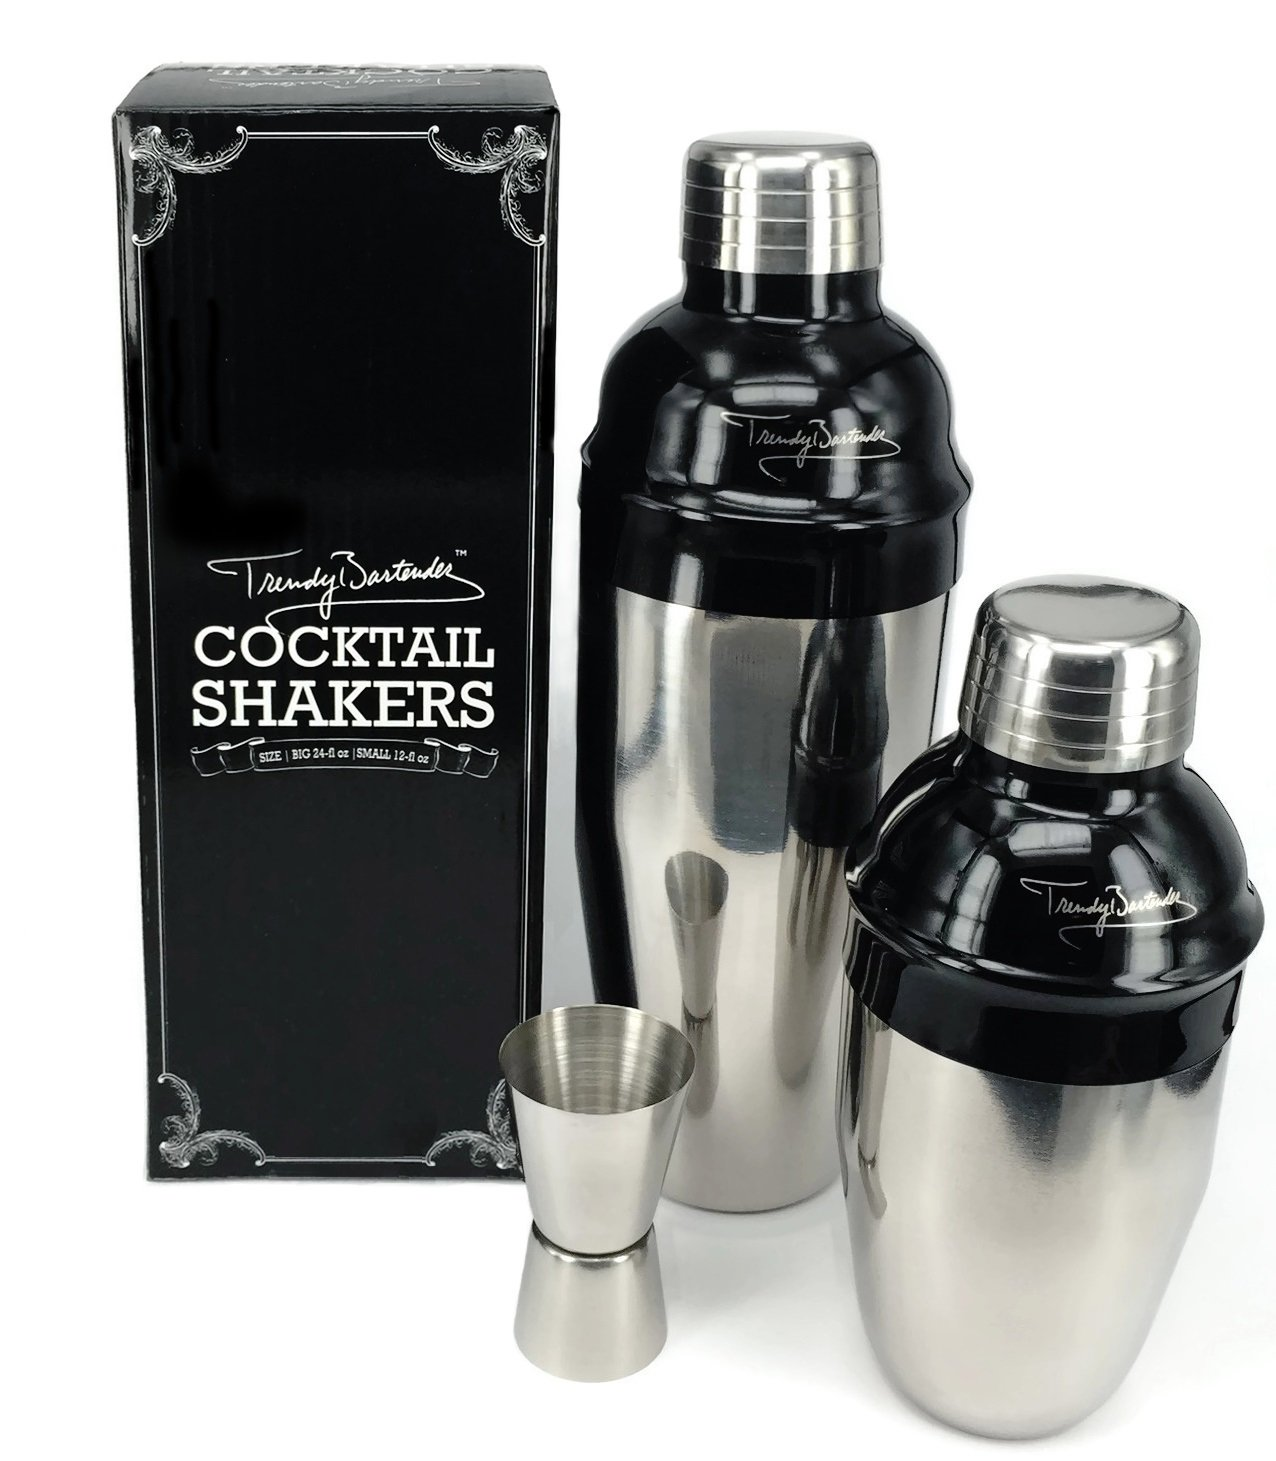 Premium Cocktail Shaker Set – 2 Professional Stainless Steel Martini Shakers (12 Ounce and 24 Ounce) – Built-In Strainer – Double Jigger Included – Bonus Cocktail Recipe eBook (Semi-Black)